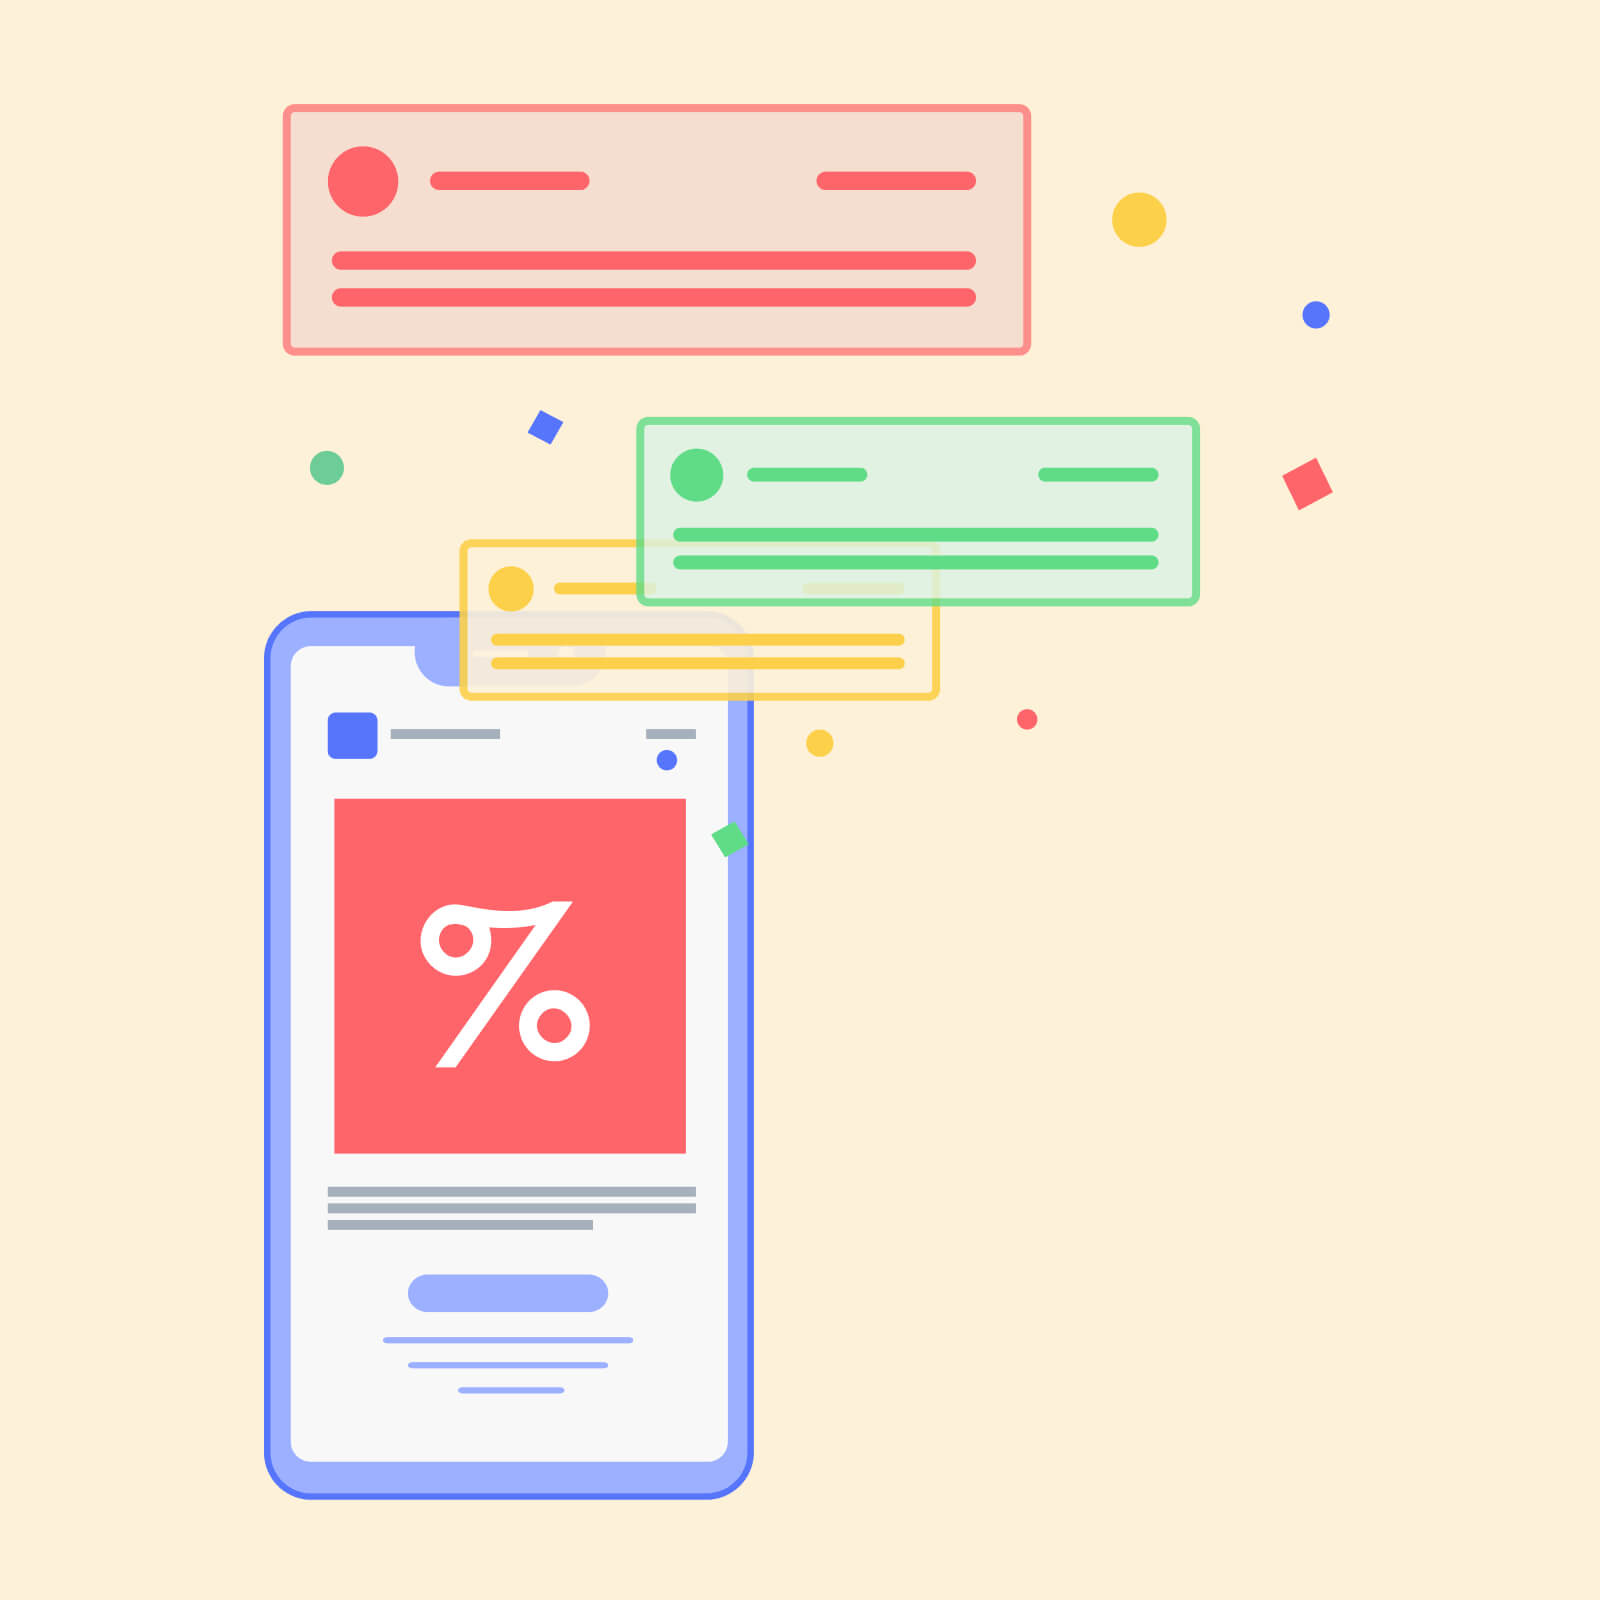 Personalized Offers in Mobile Engagement